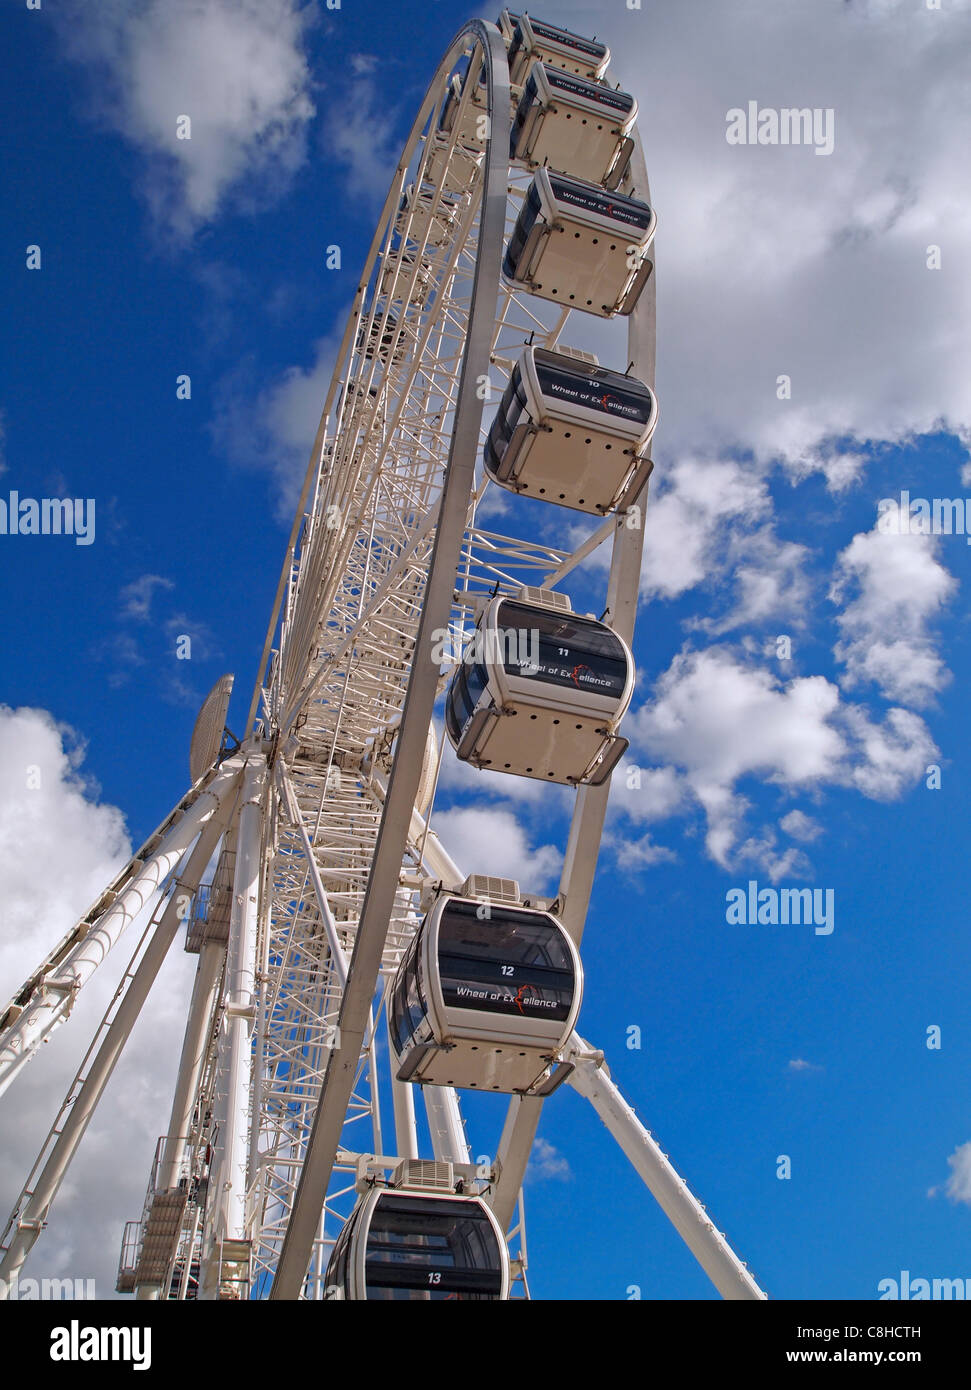 The Brighton Wheel - also known as 'The Wheel of Excellence' - a new attraction on Brighton's seafront - Stock Image